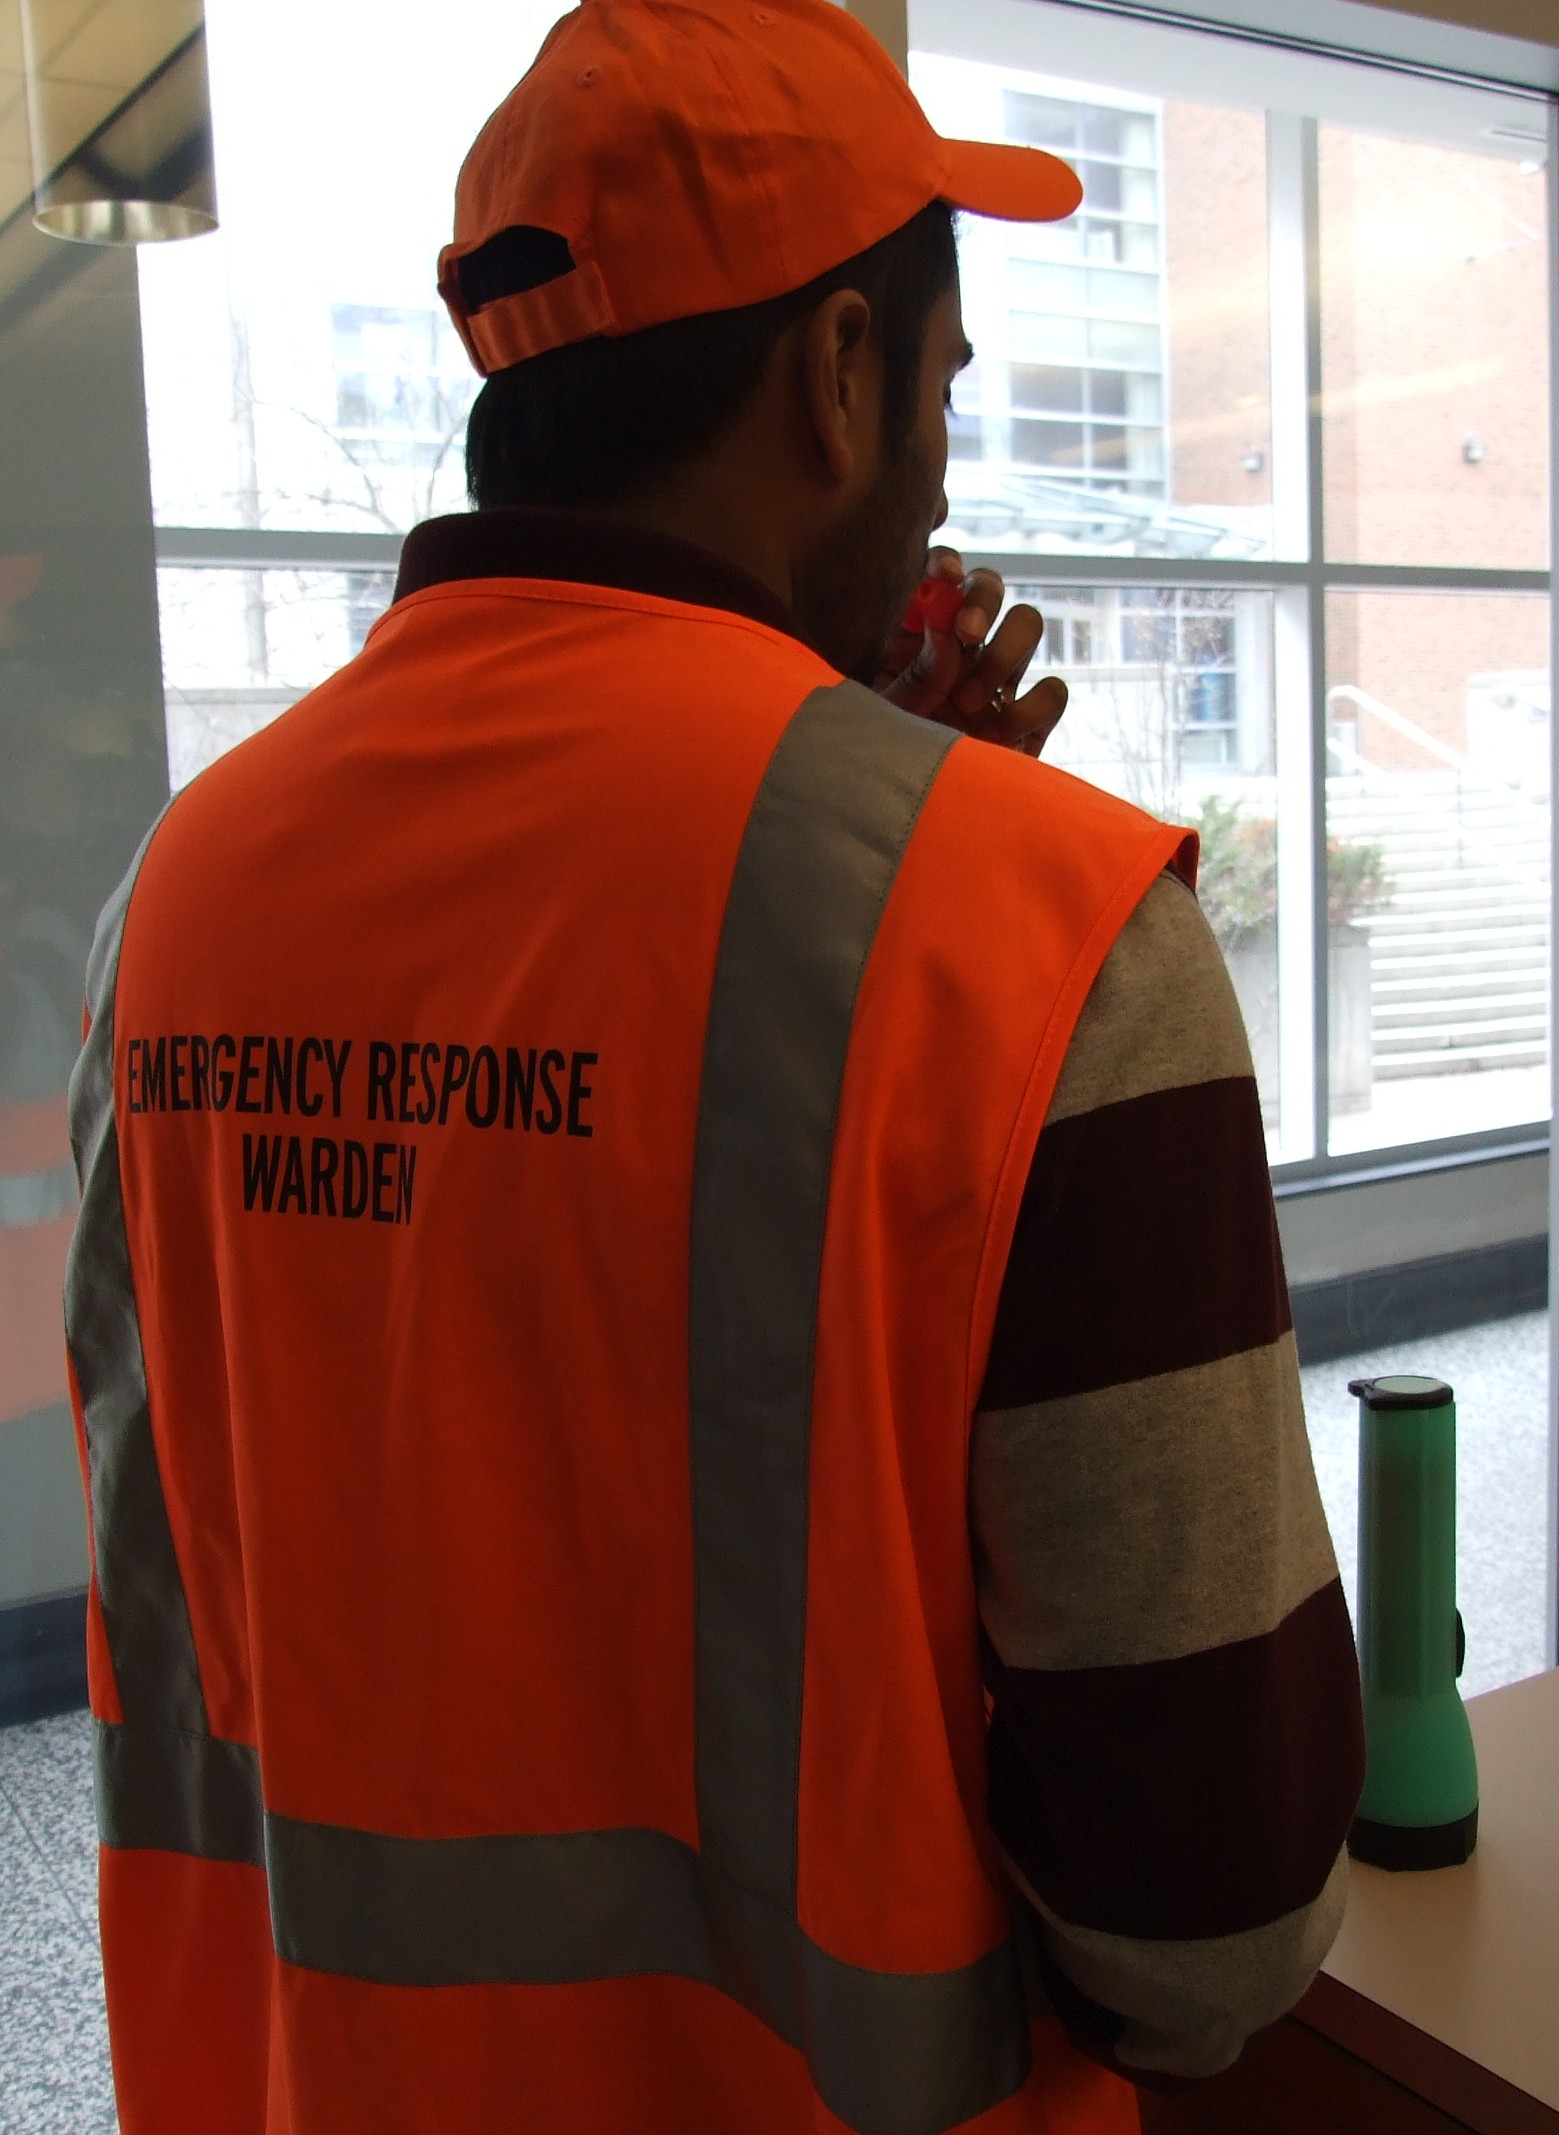 A Person with an Orange Vest Displaying Emergency Response Warden blowing a whistle